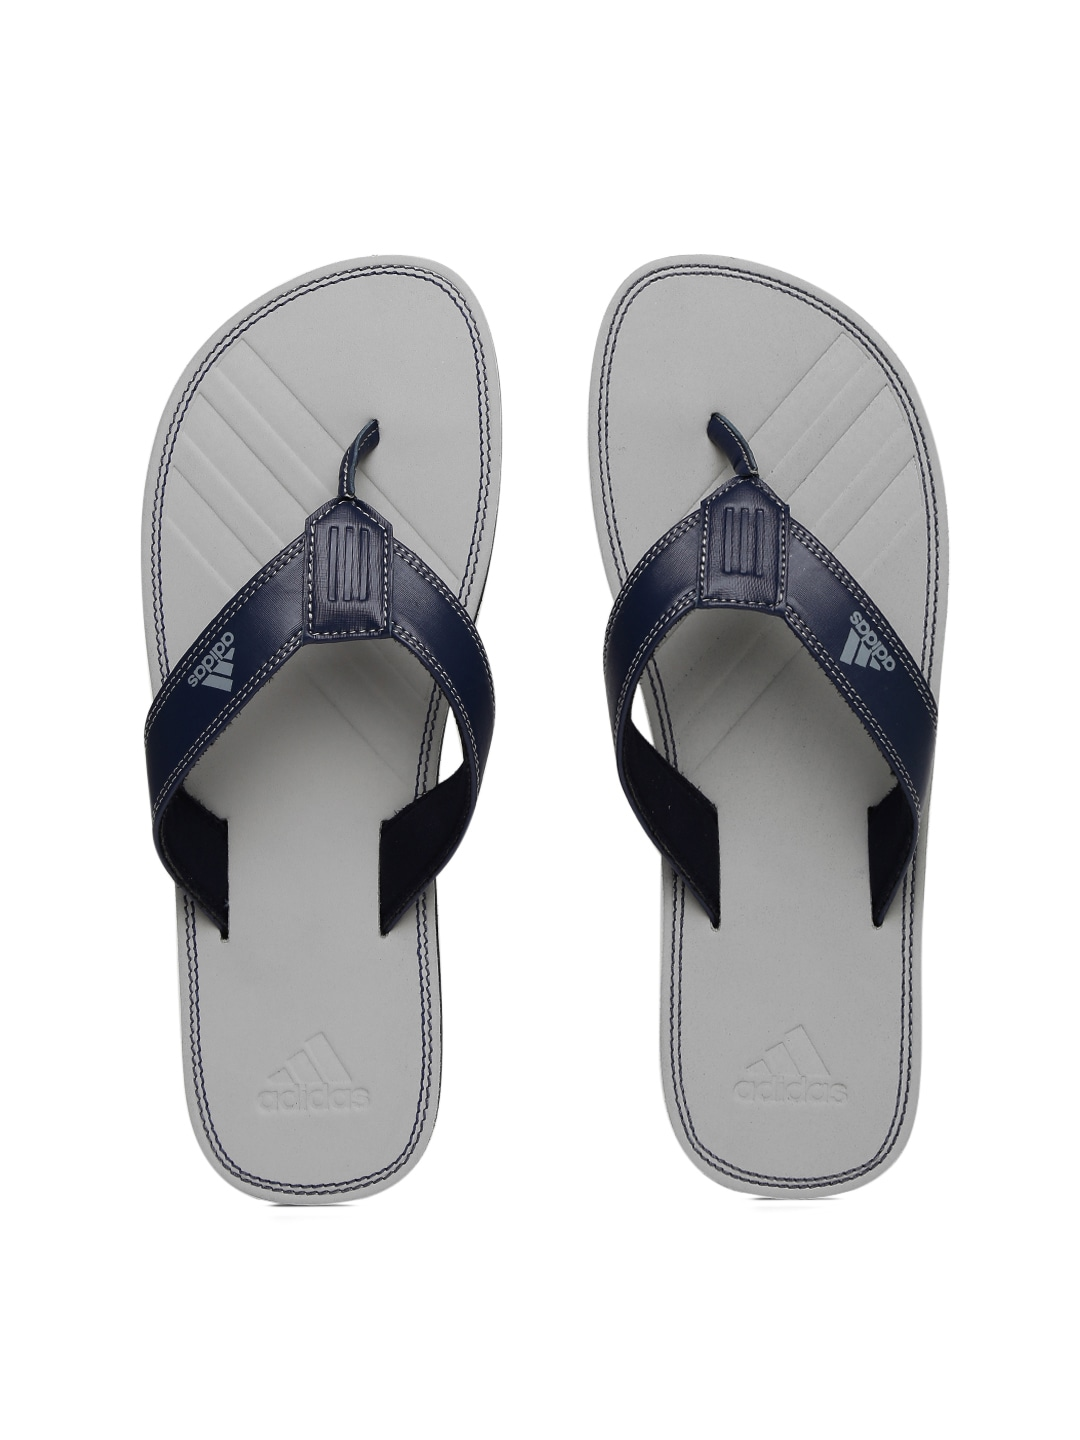 f17ce62fb972 Adidas bi4459 Men Navy And Grey Brizo 4 0 Ms Flip Flops - Best Price ...